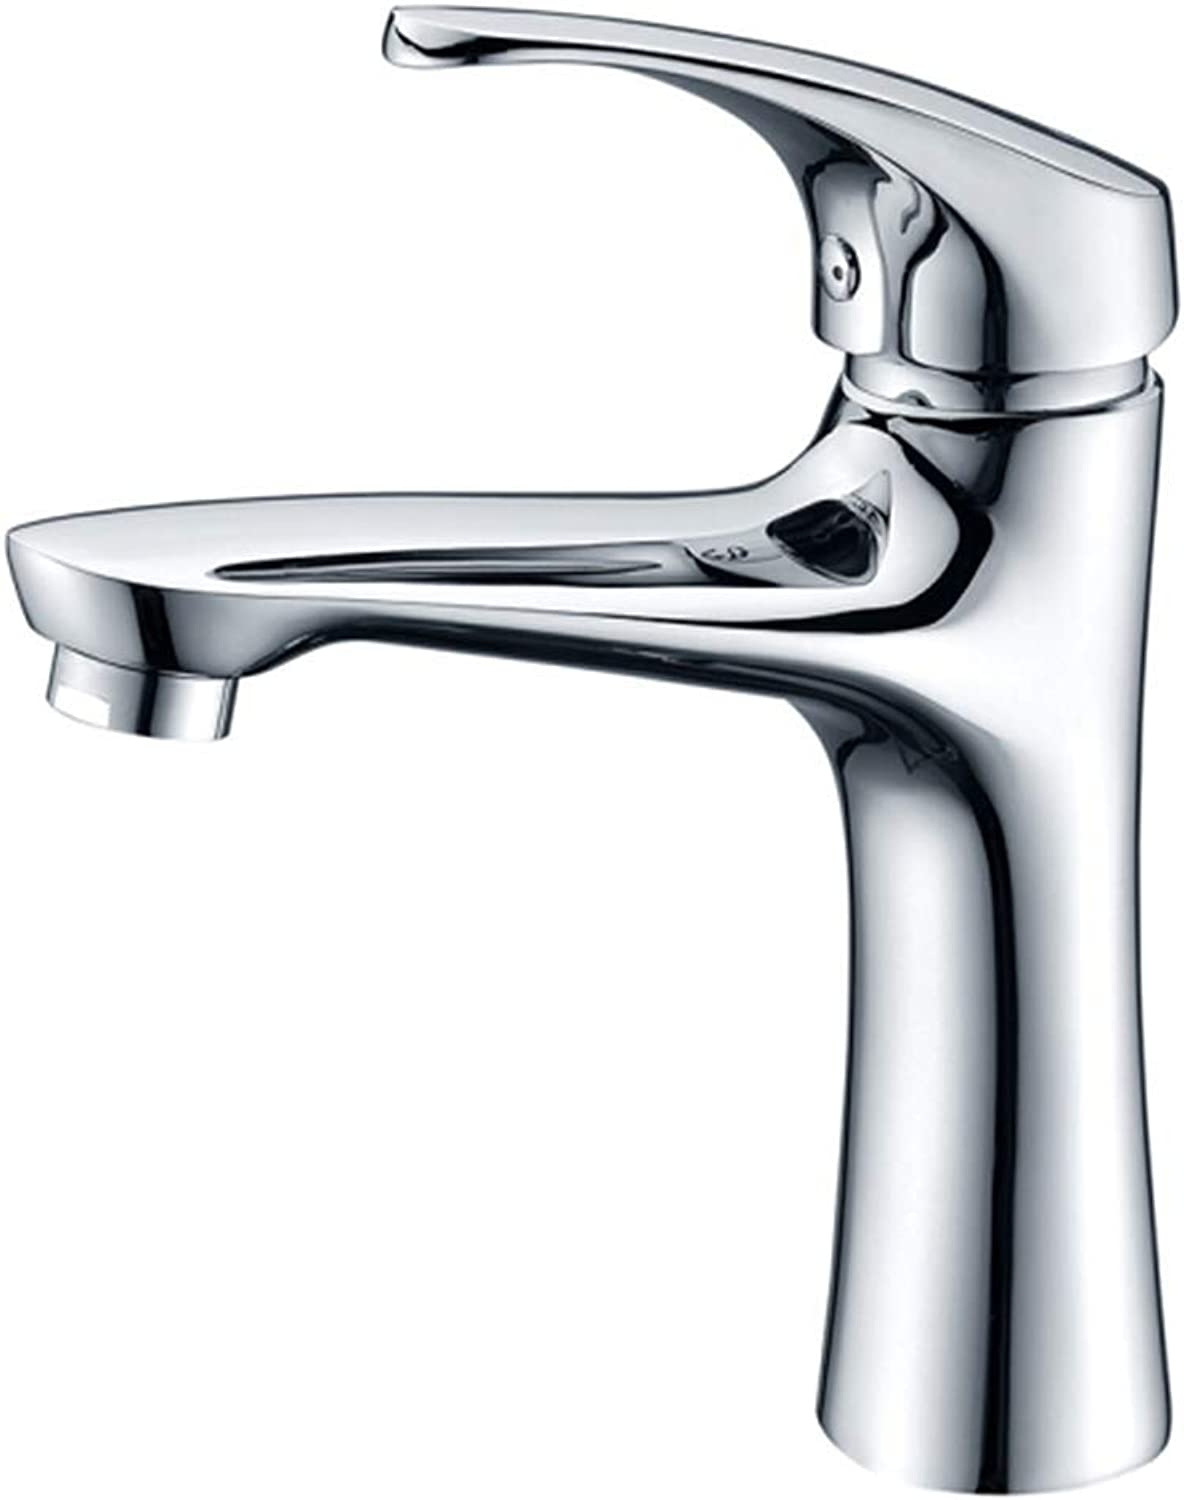 Kitchen Taps Faucet Modern Kitchen Sink Taps Stainless Steelface Basin Faucet Single Hole Copper Hot and Cold Water Nozzle Hand Basin Faucet